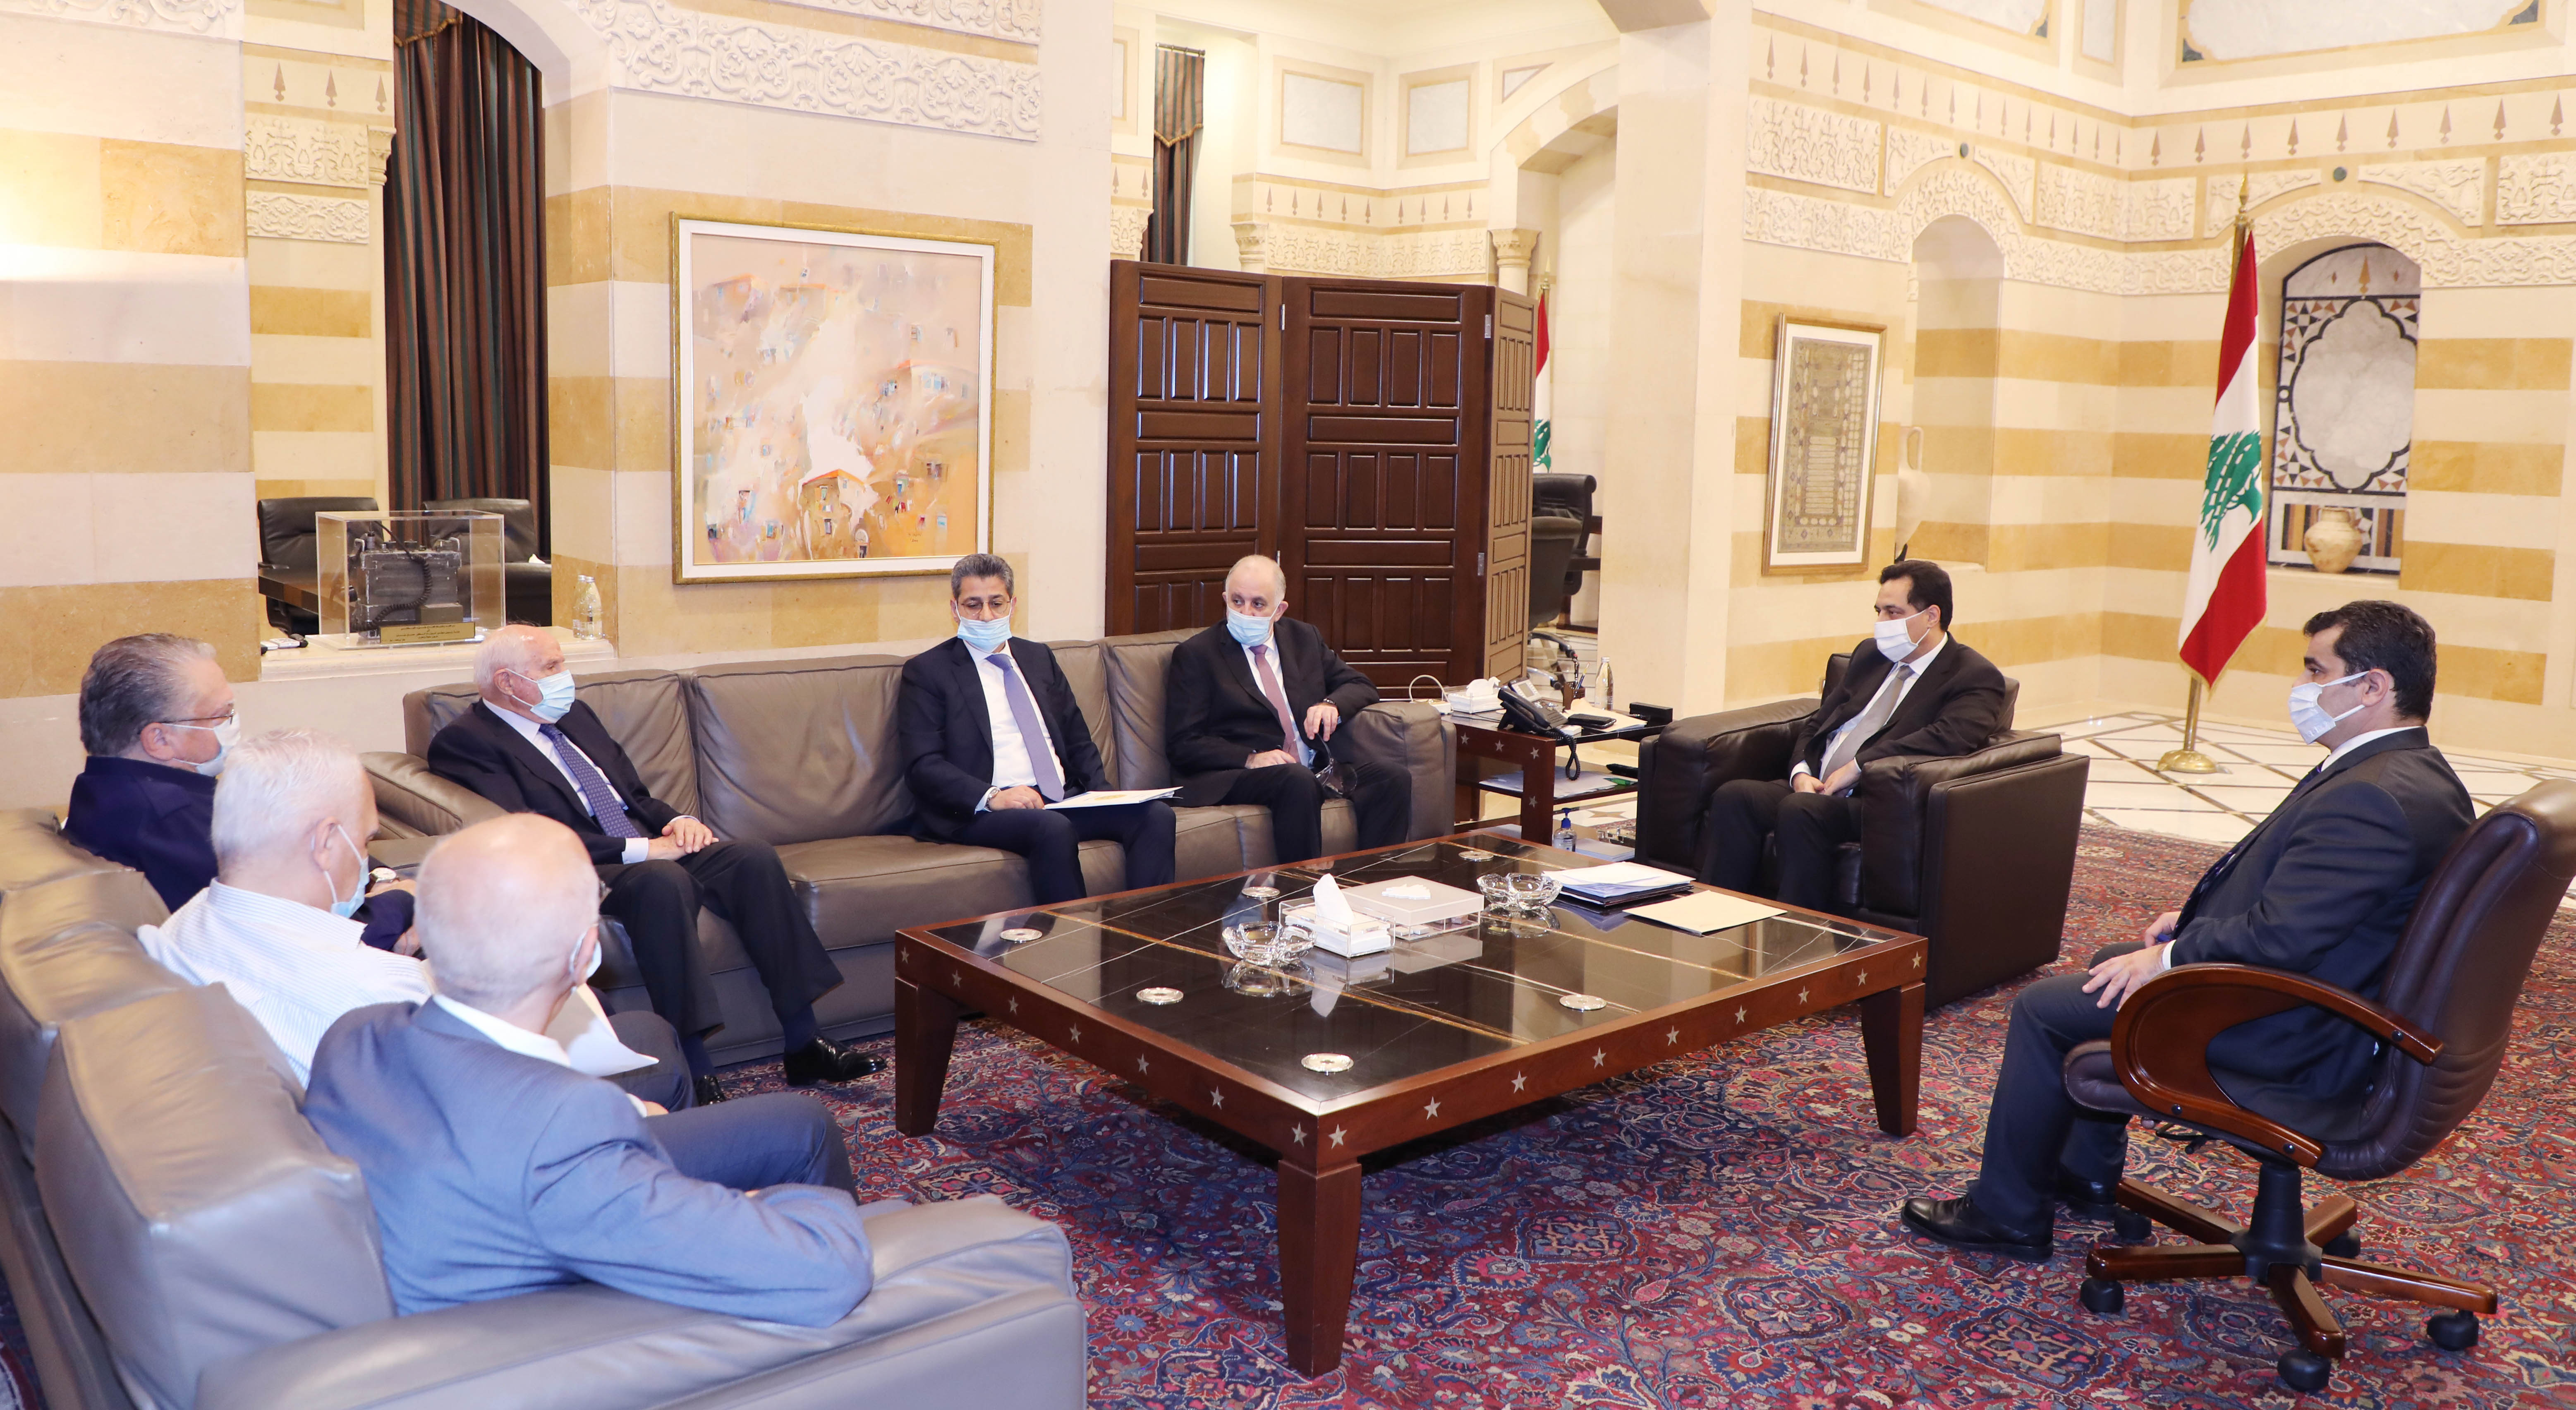 Pr Minister Hassan Diab meets Minister Ahmad Fehmi with a Delegation